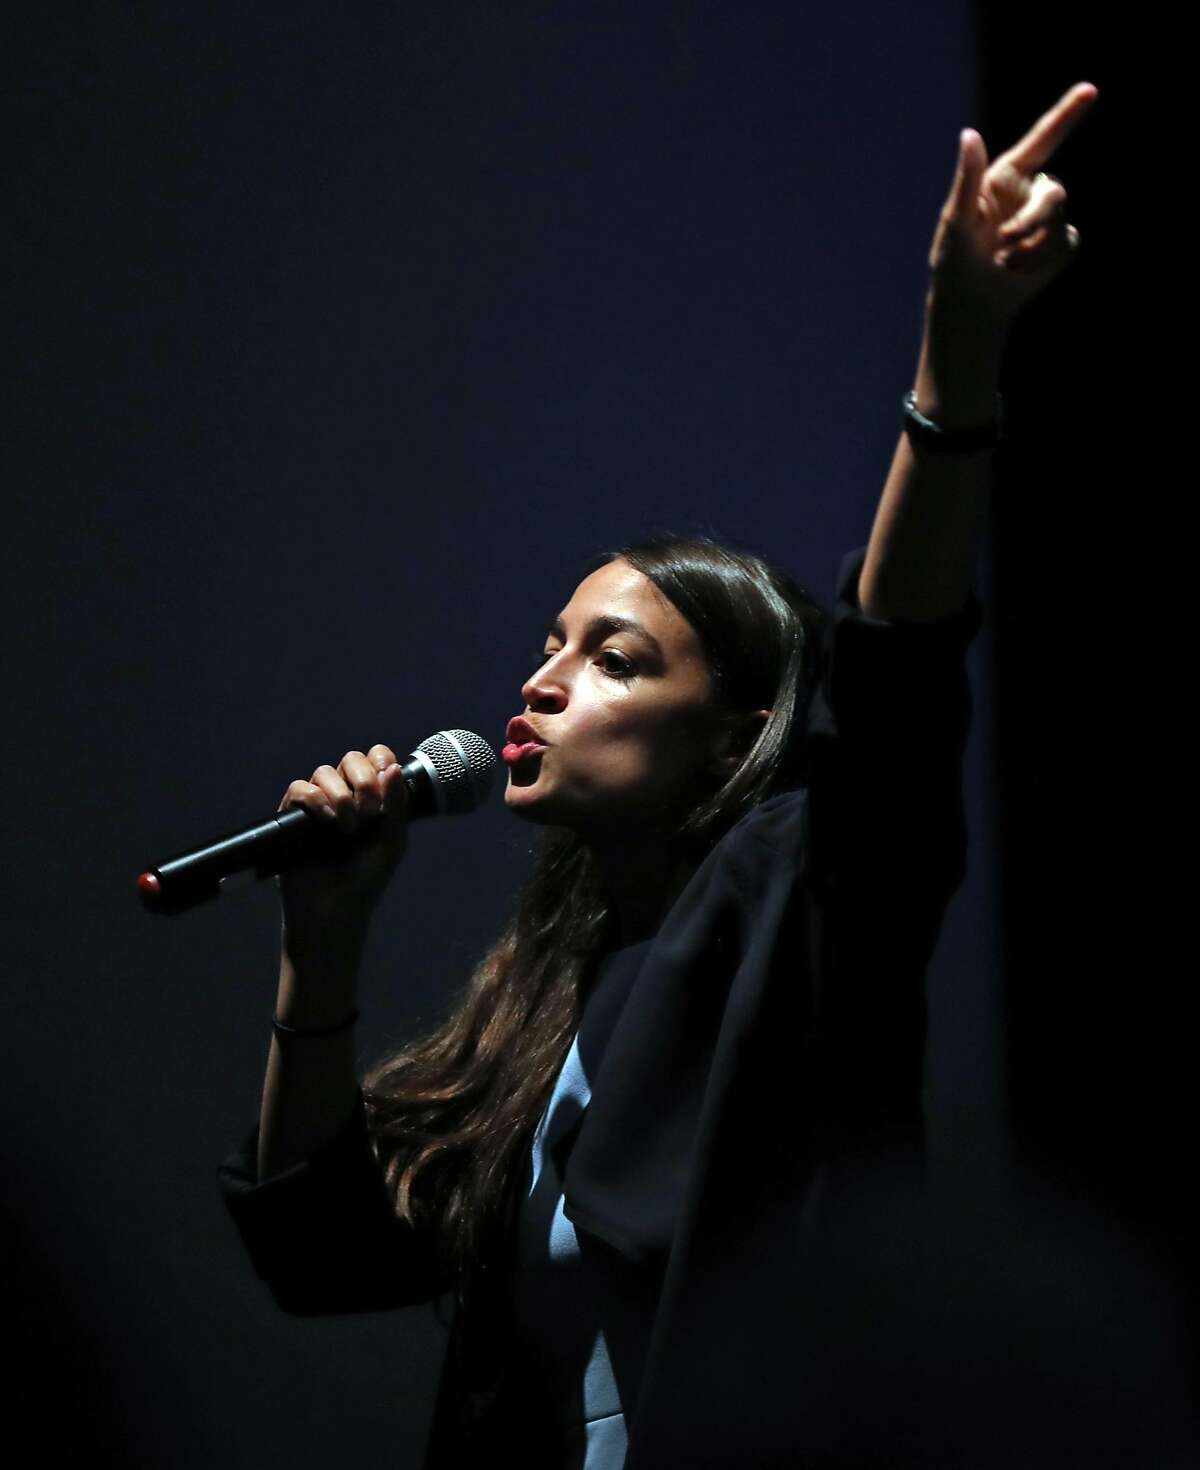 Alexandria Ocasio Cortez speaks to crowd at San Francisco Progressive Alliance event at Gray Area Grand Theater in San Francisco, Calif. on Tuesday, July 31, 2018.